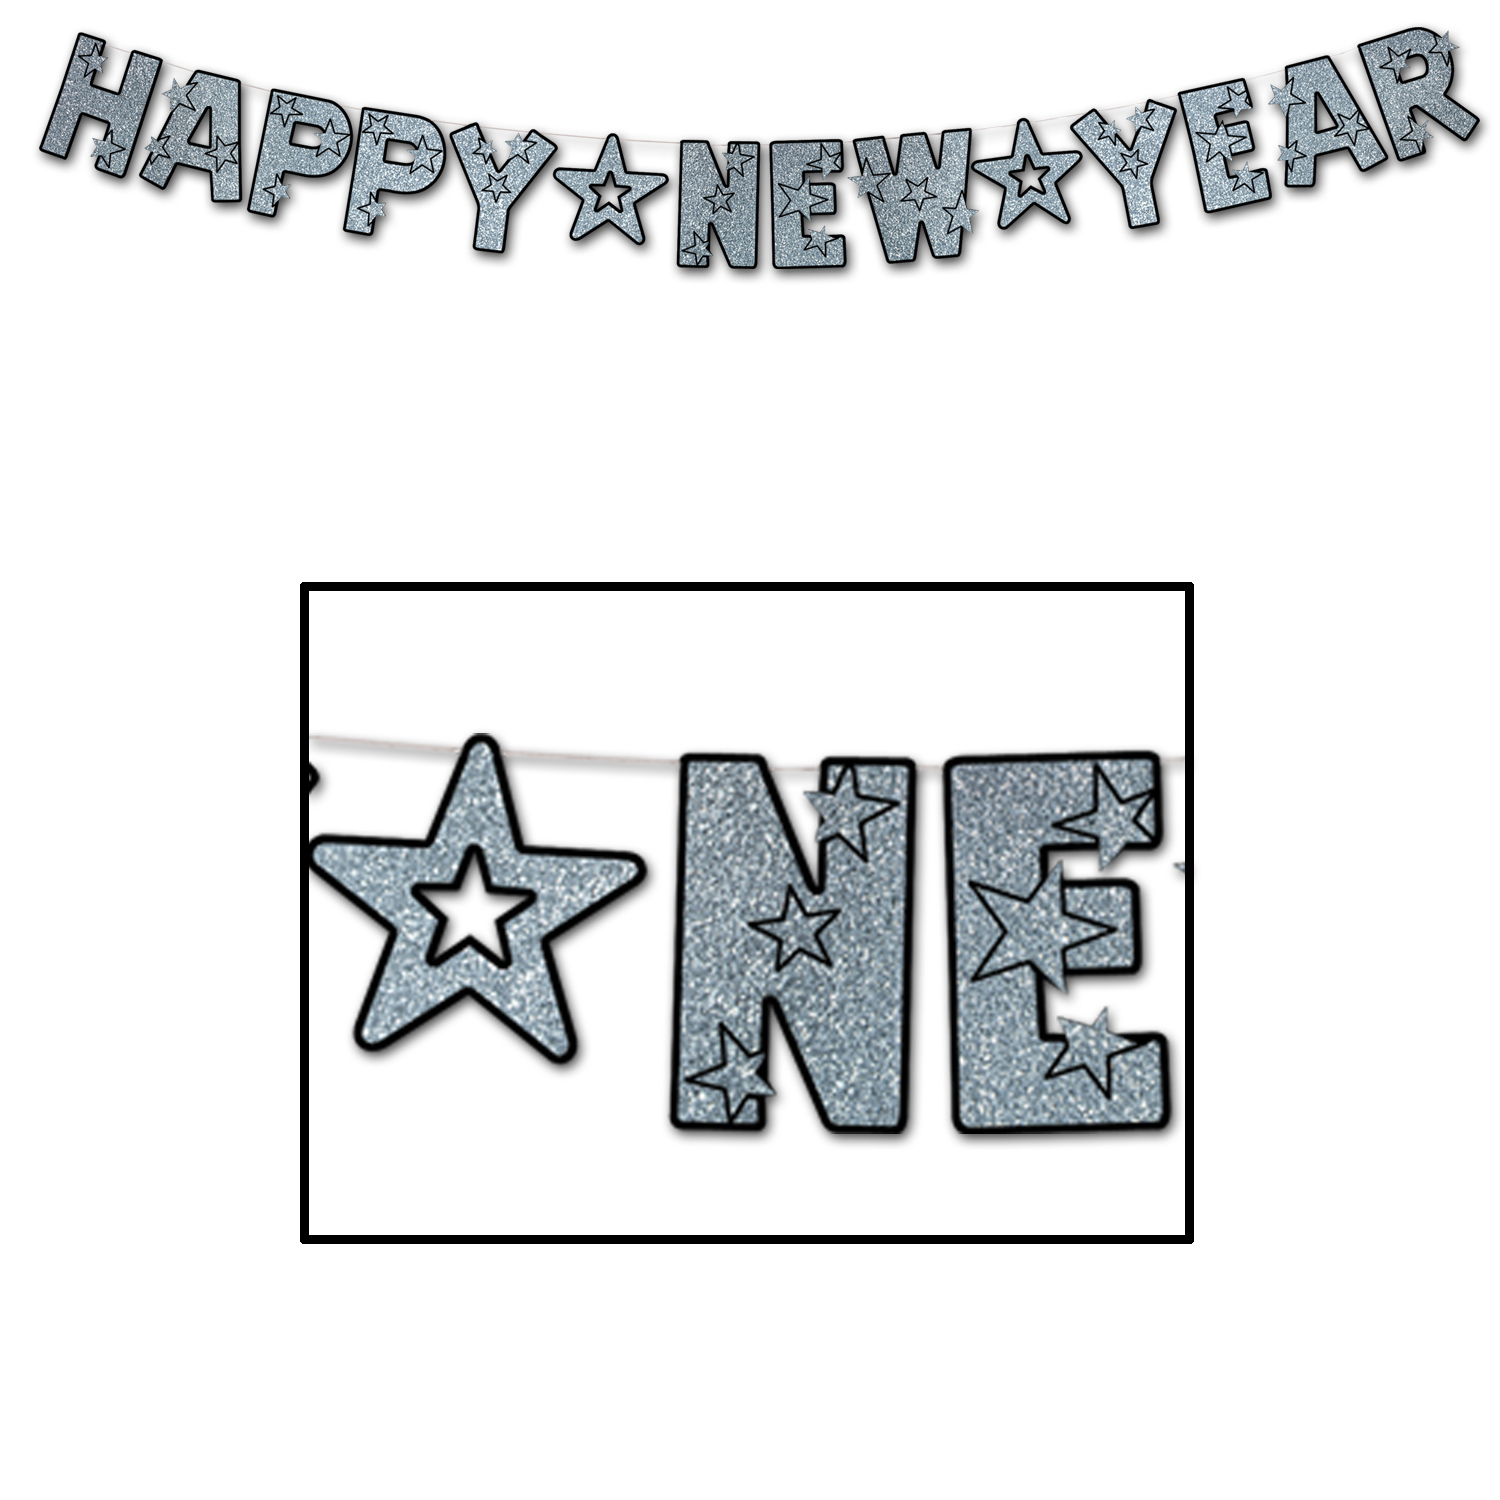 Glittered Happy New Year Streamer (Pack of 1) glittered, happy, new, year, streamer, confetti, black, silver, party, eve, celebration